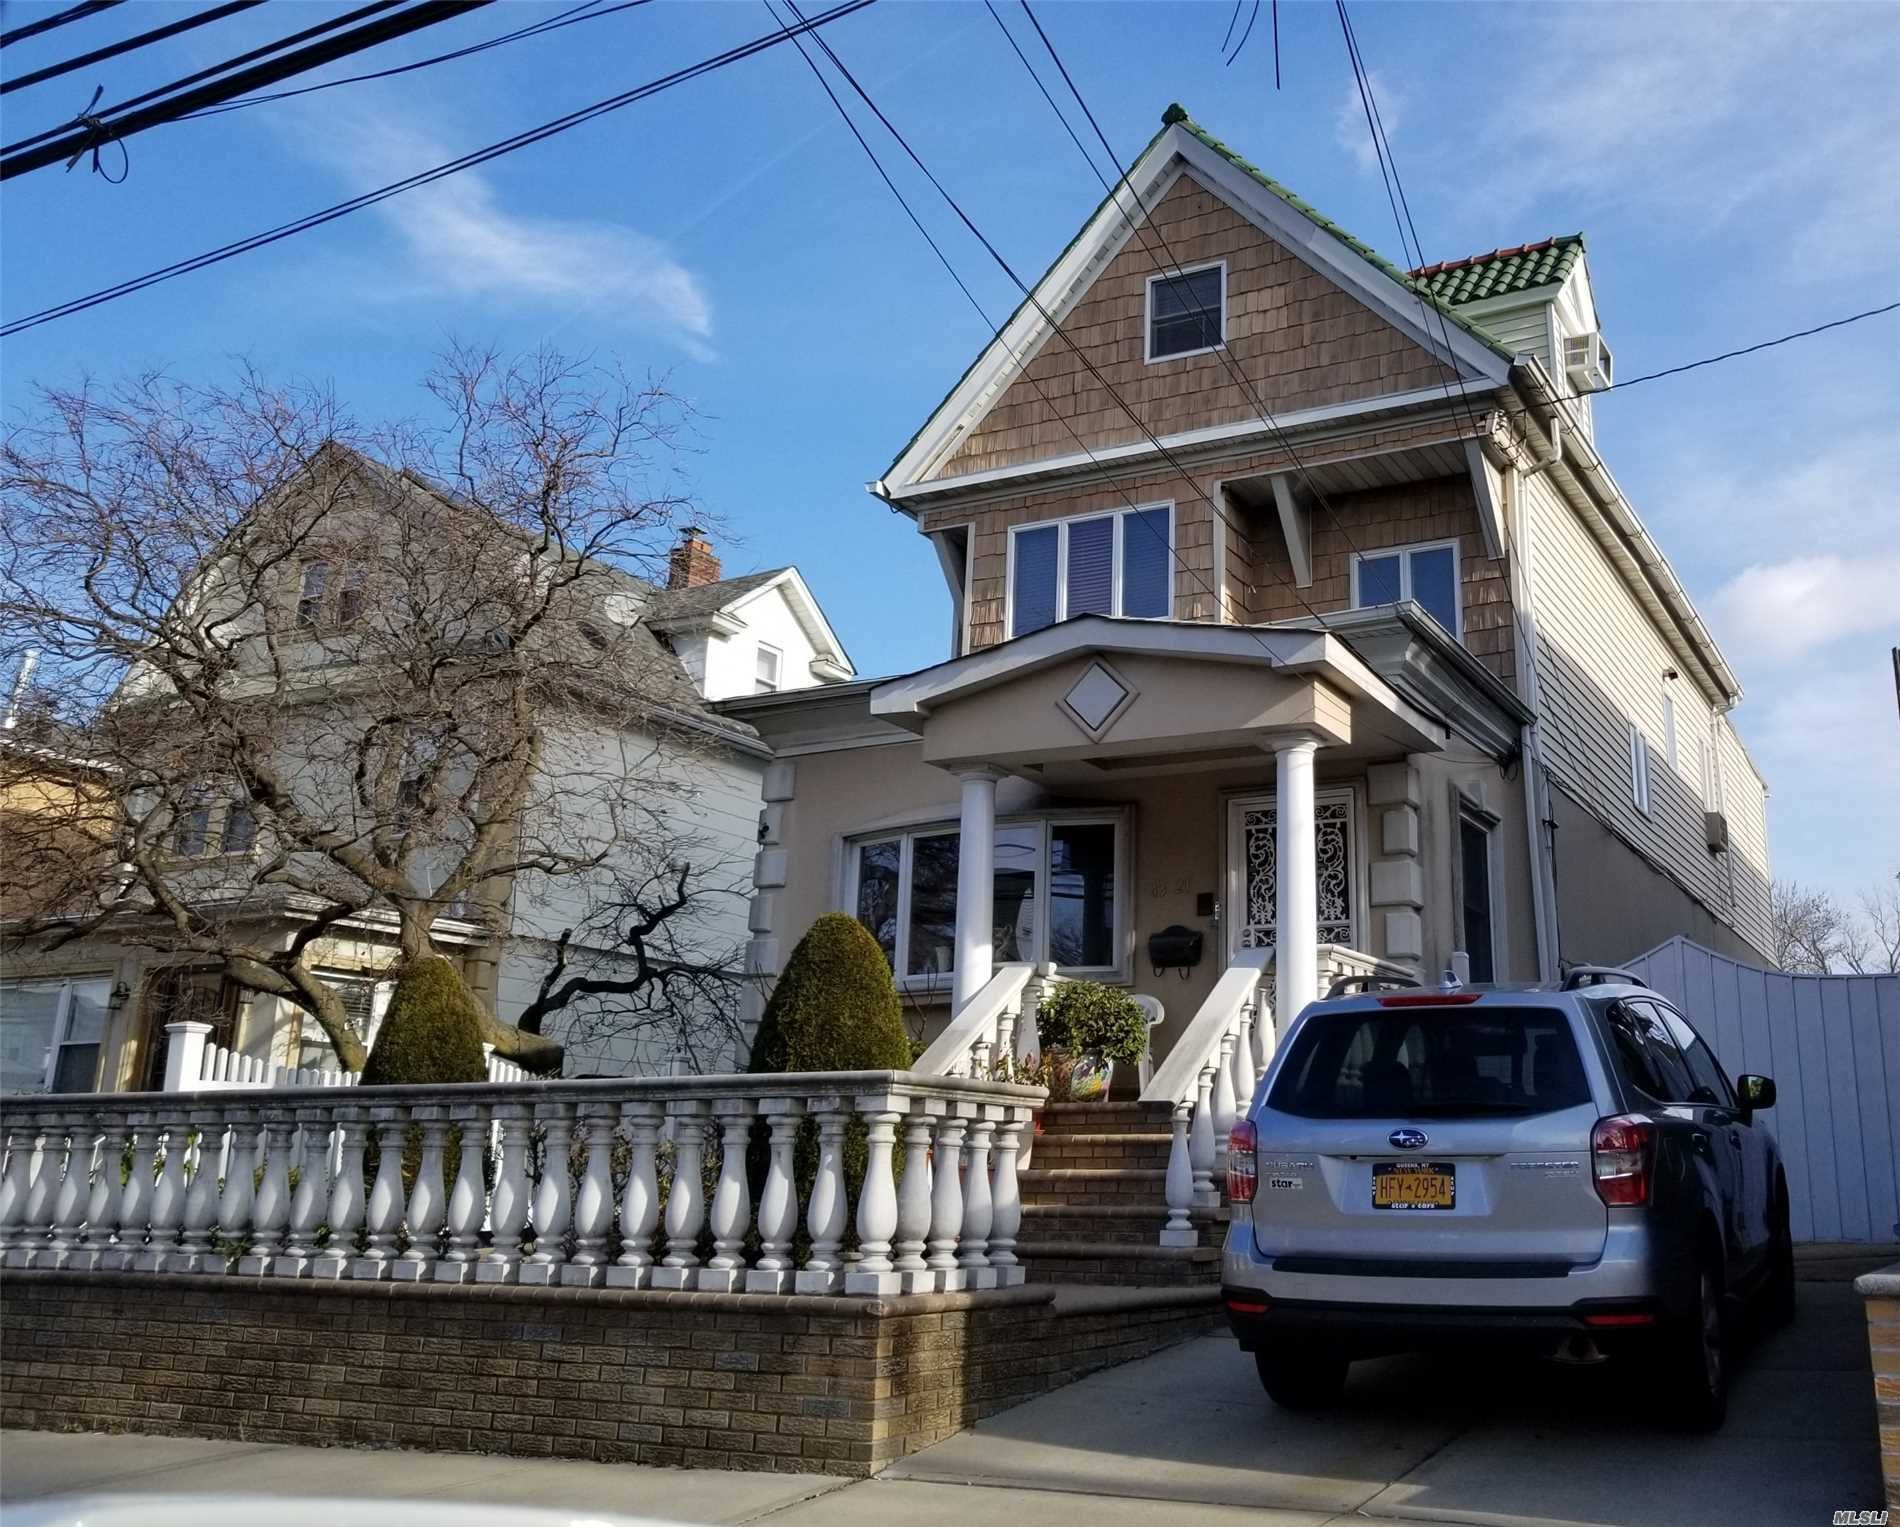 Beautiful 2 Fam. In Heart Of Flushing,  Gourmet Eik. Custom-Built Granite Counter Top, Solid Wood Cabinetry, Top Line Appliances,  R4-1 Zoning,  The Lirr(Broadway Station) Within 3 Blocks. By Appt Only 24Hrs Adv Notice.